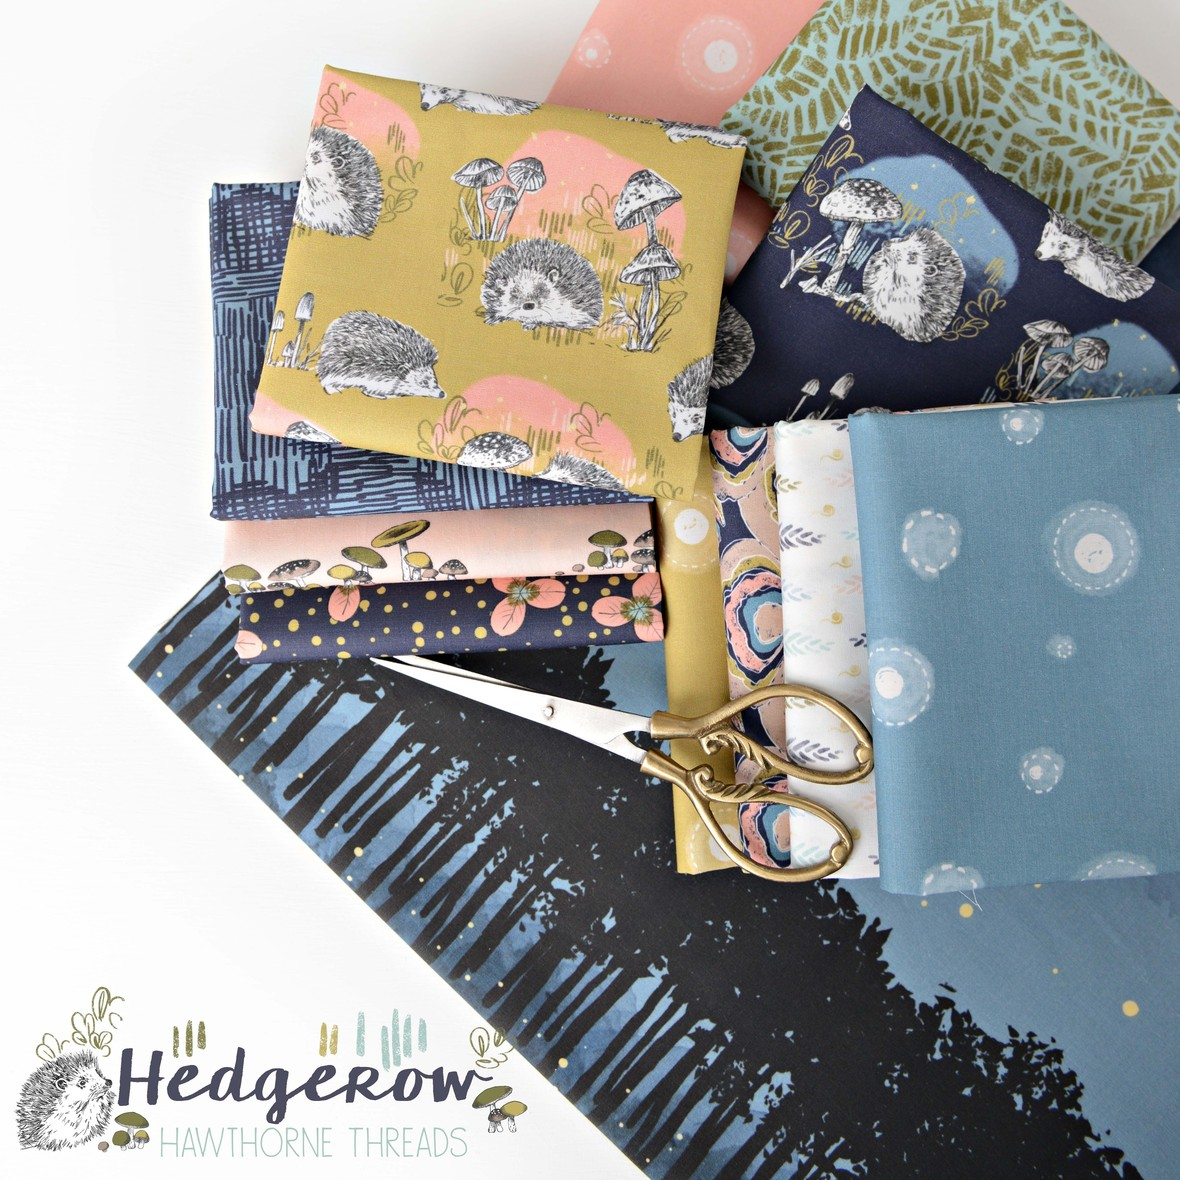 Hedgerow Fabric by Hawthorne Threads